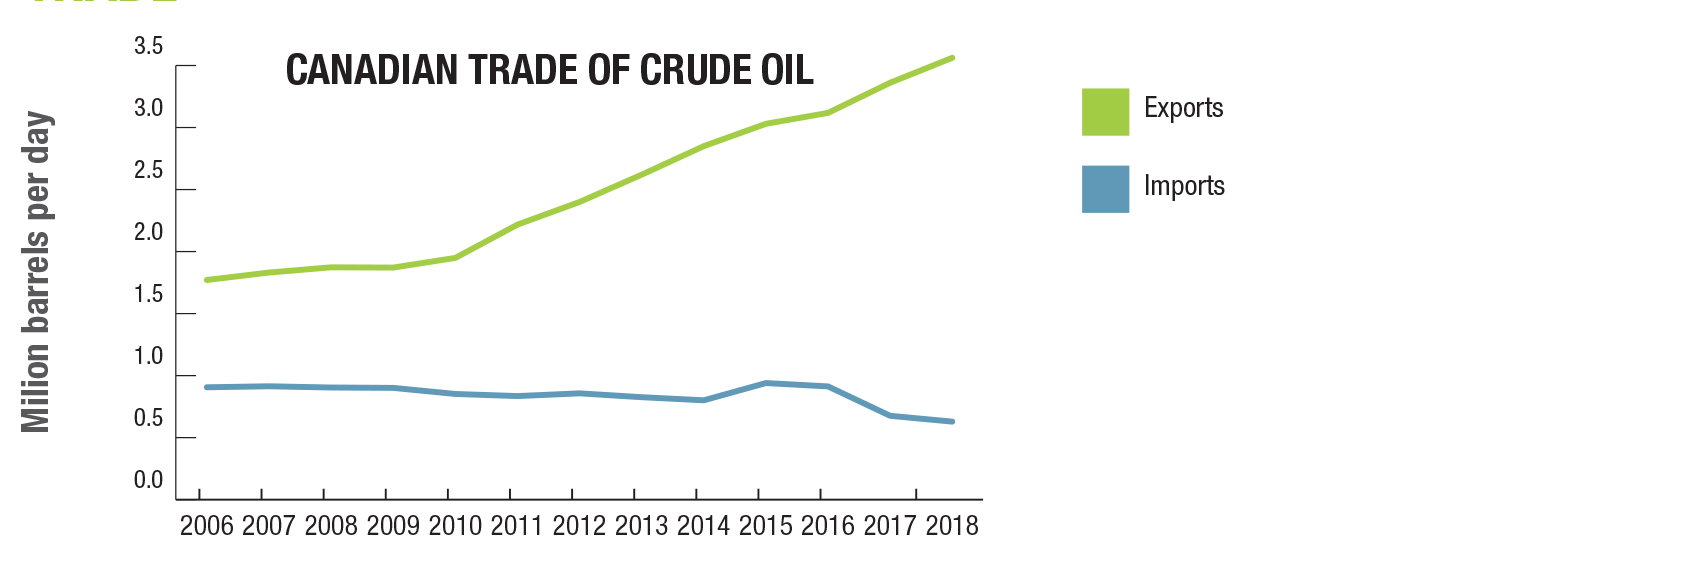 Crude oil facts | Natural Resources Canada